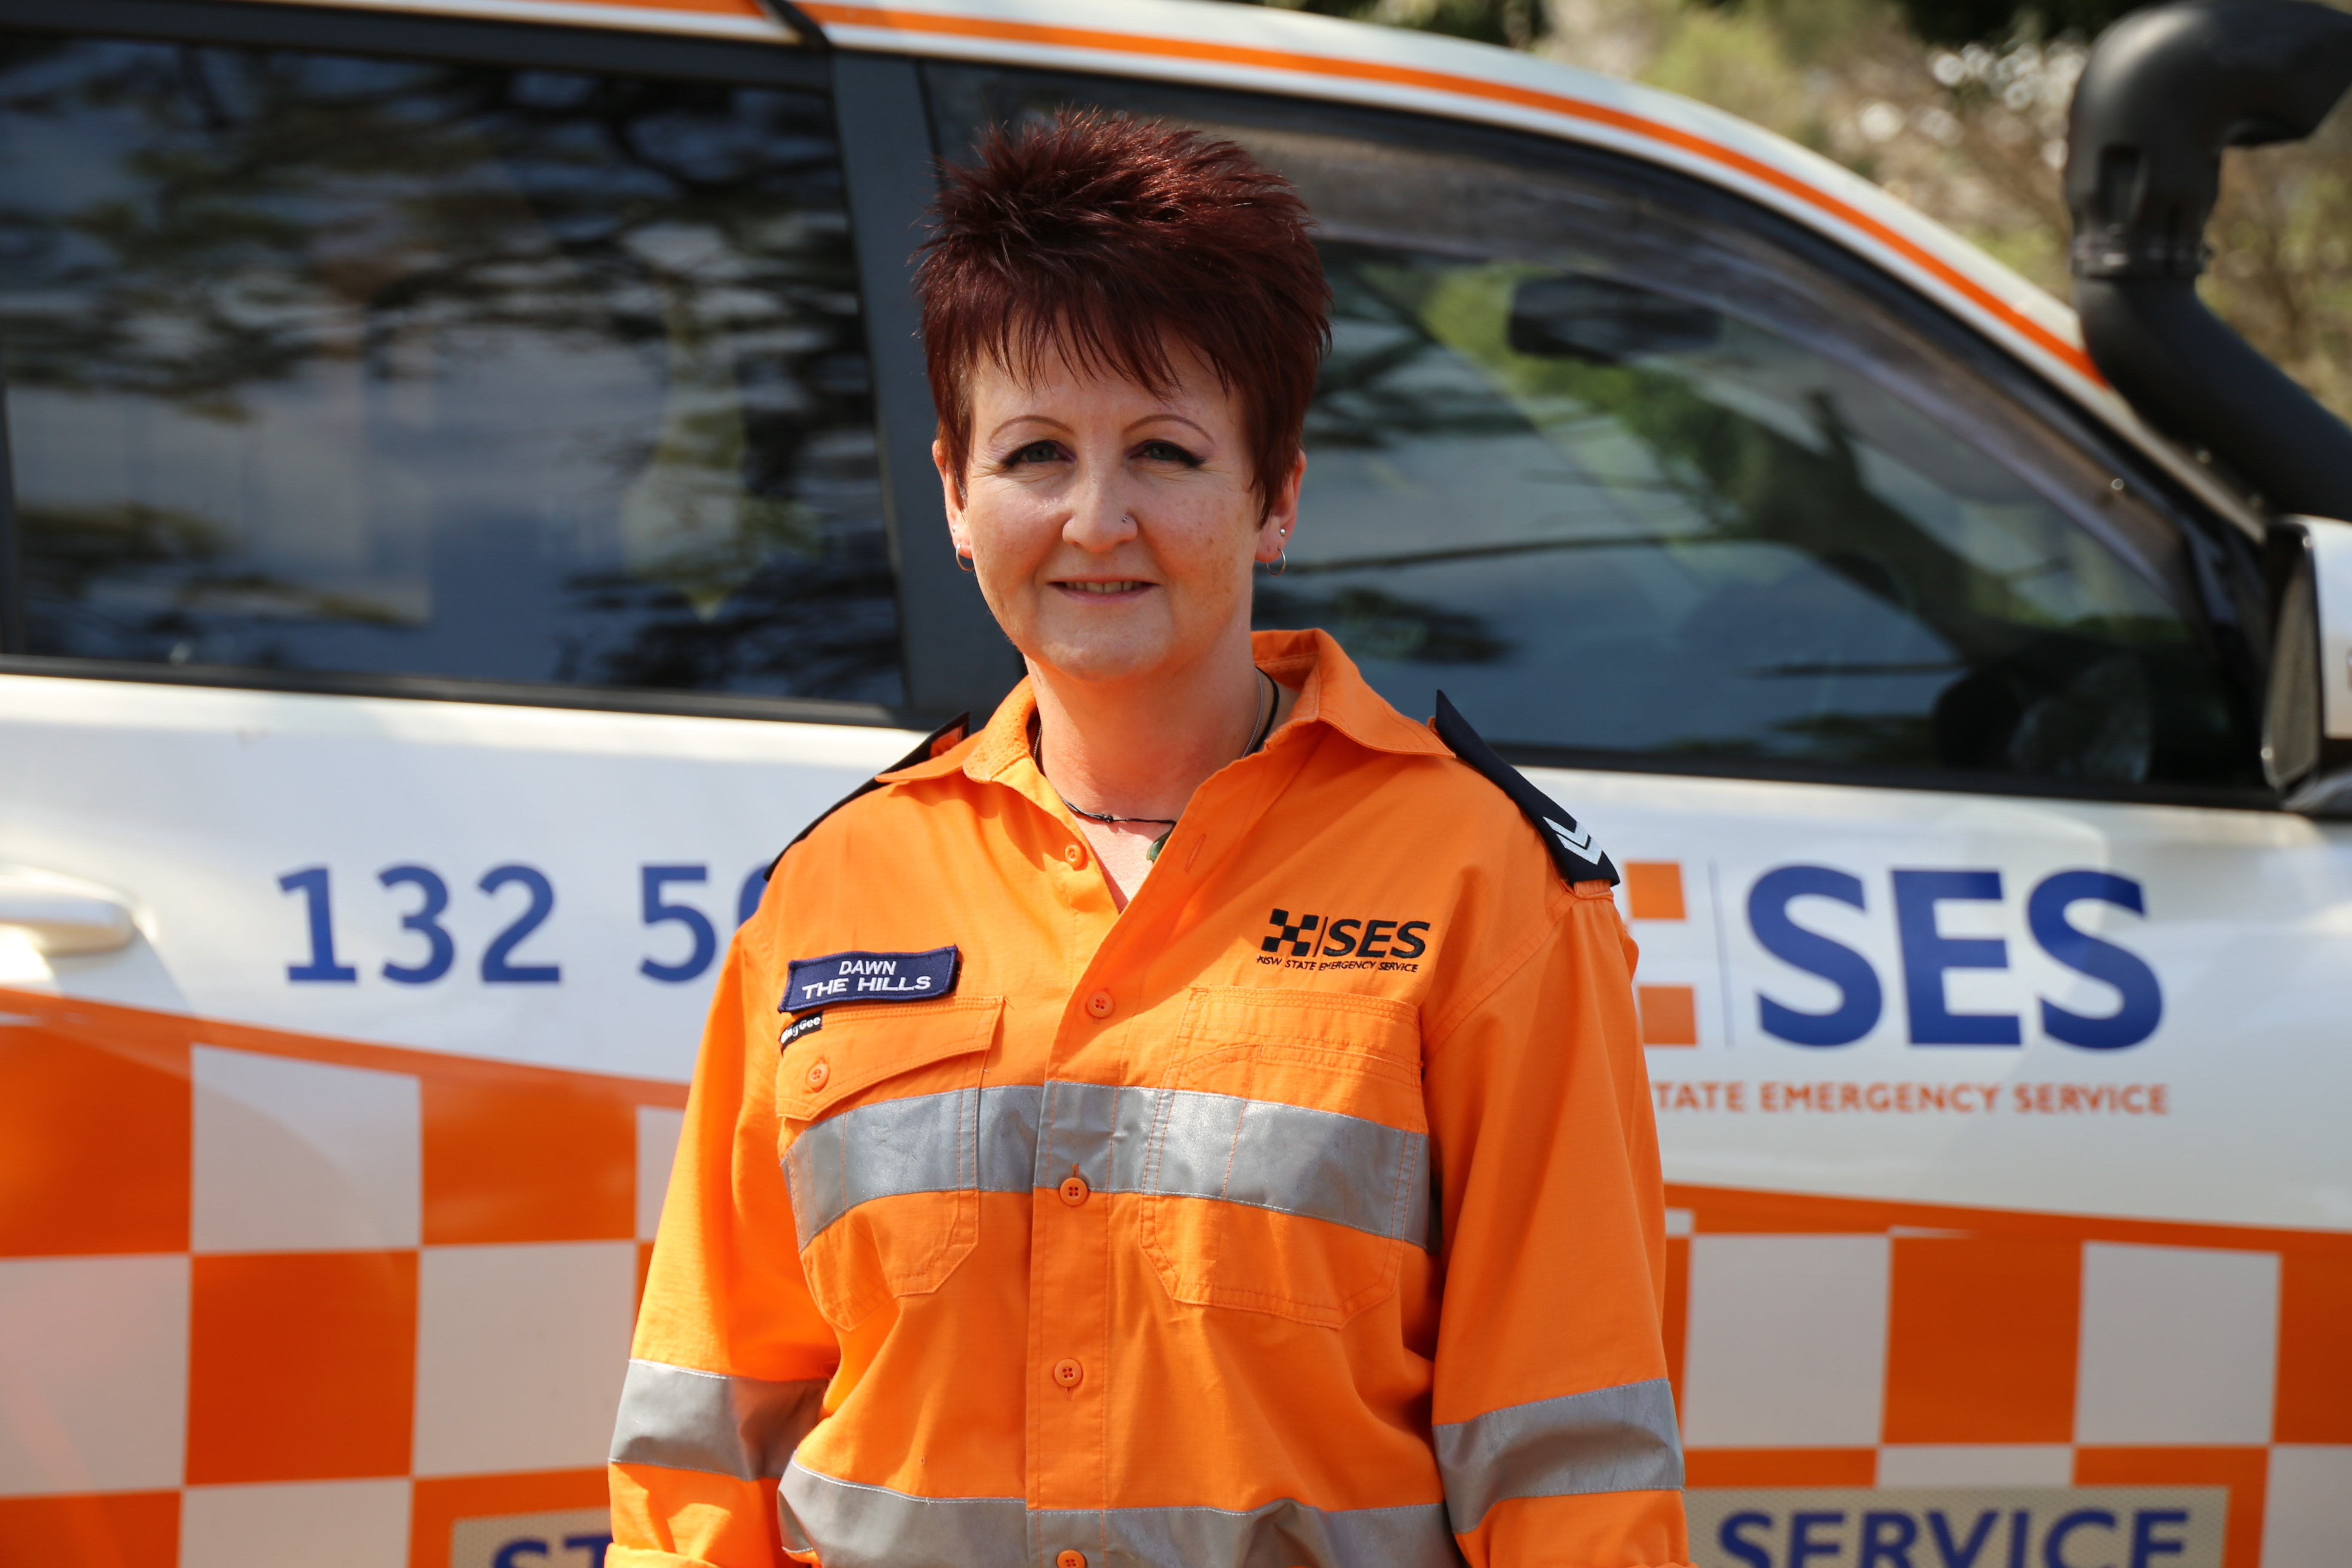 NSW SES volunteer set to officially call Australia home